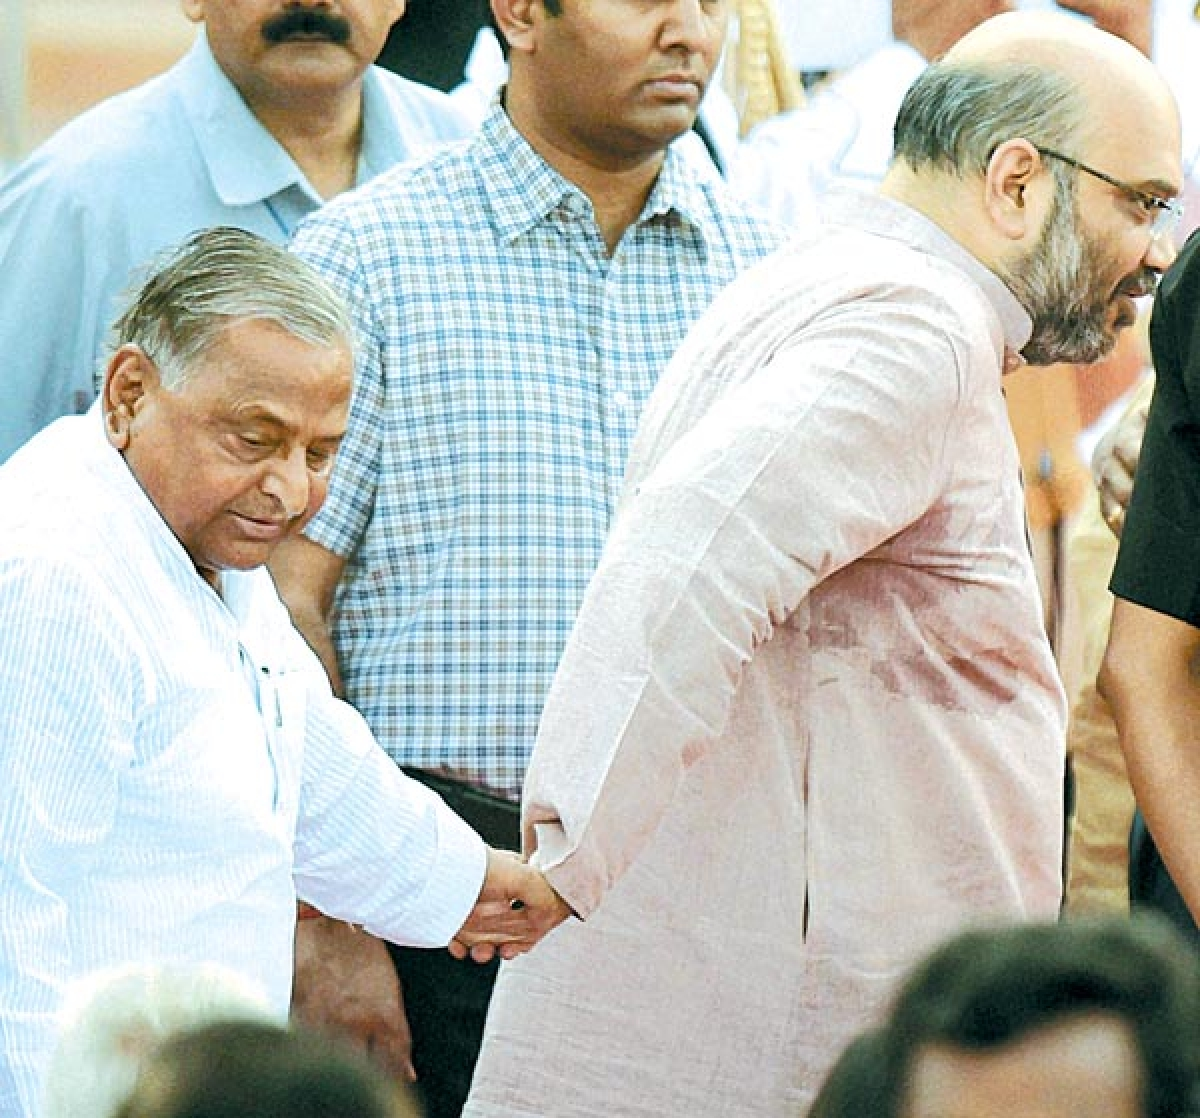 SIGN OF TIMES: BJP leader Amit Shah and SP chief Mulayam Singh Yadav giving each other a hand.